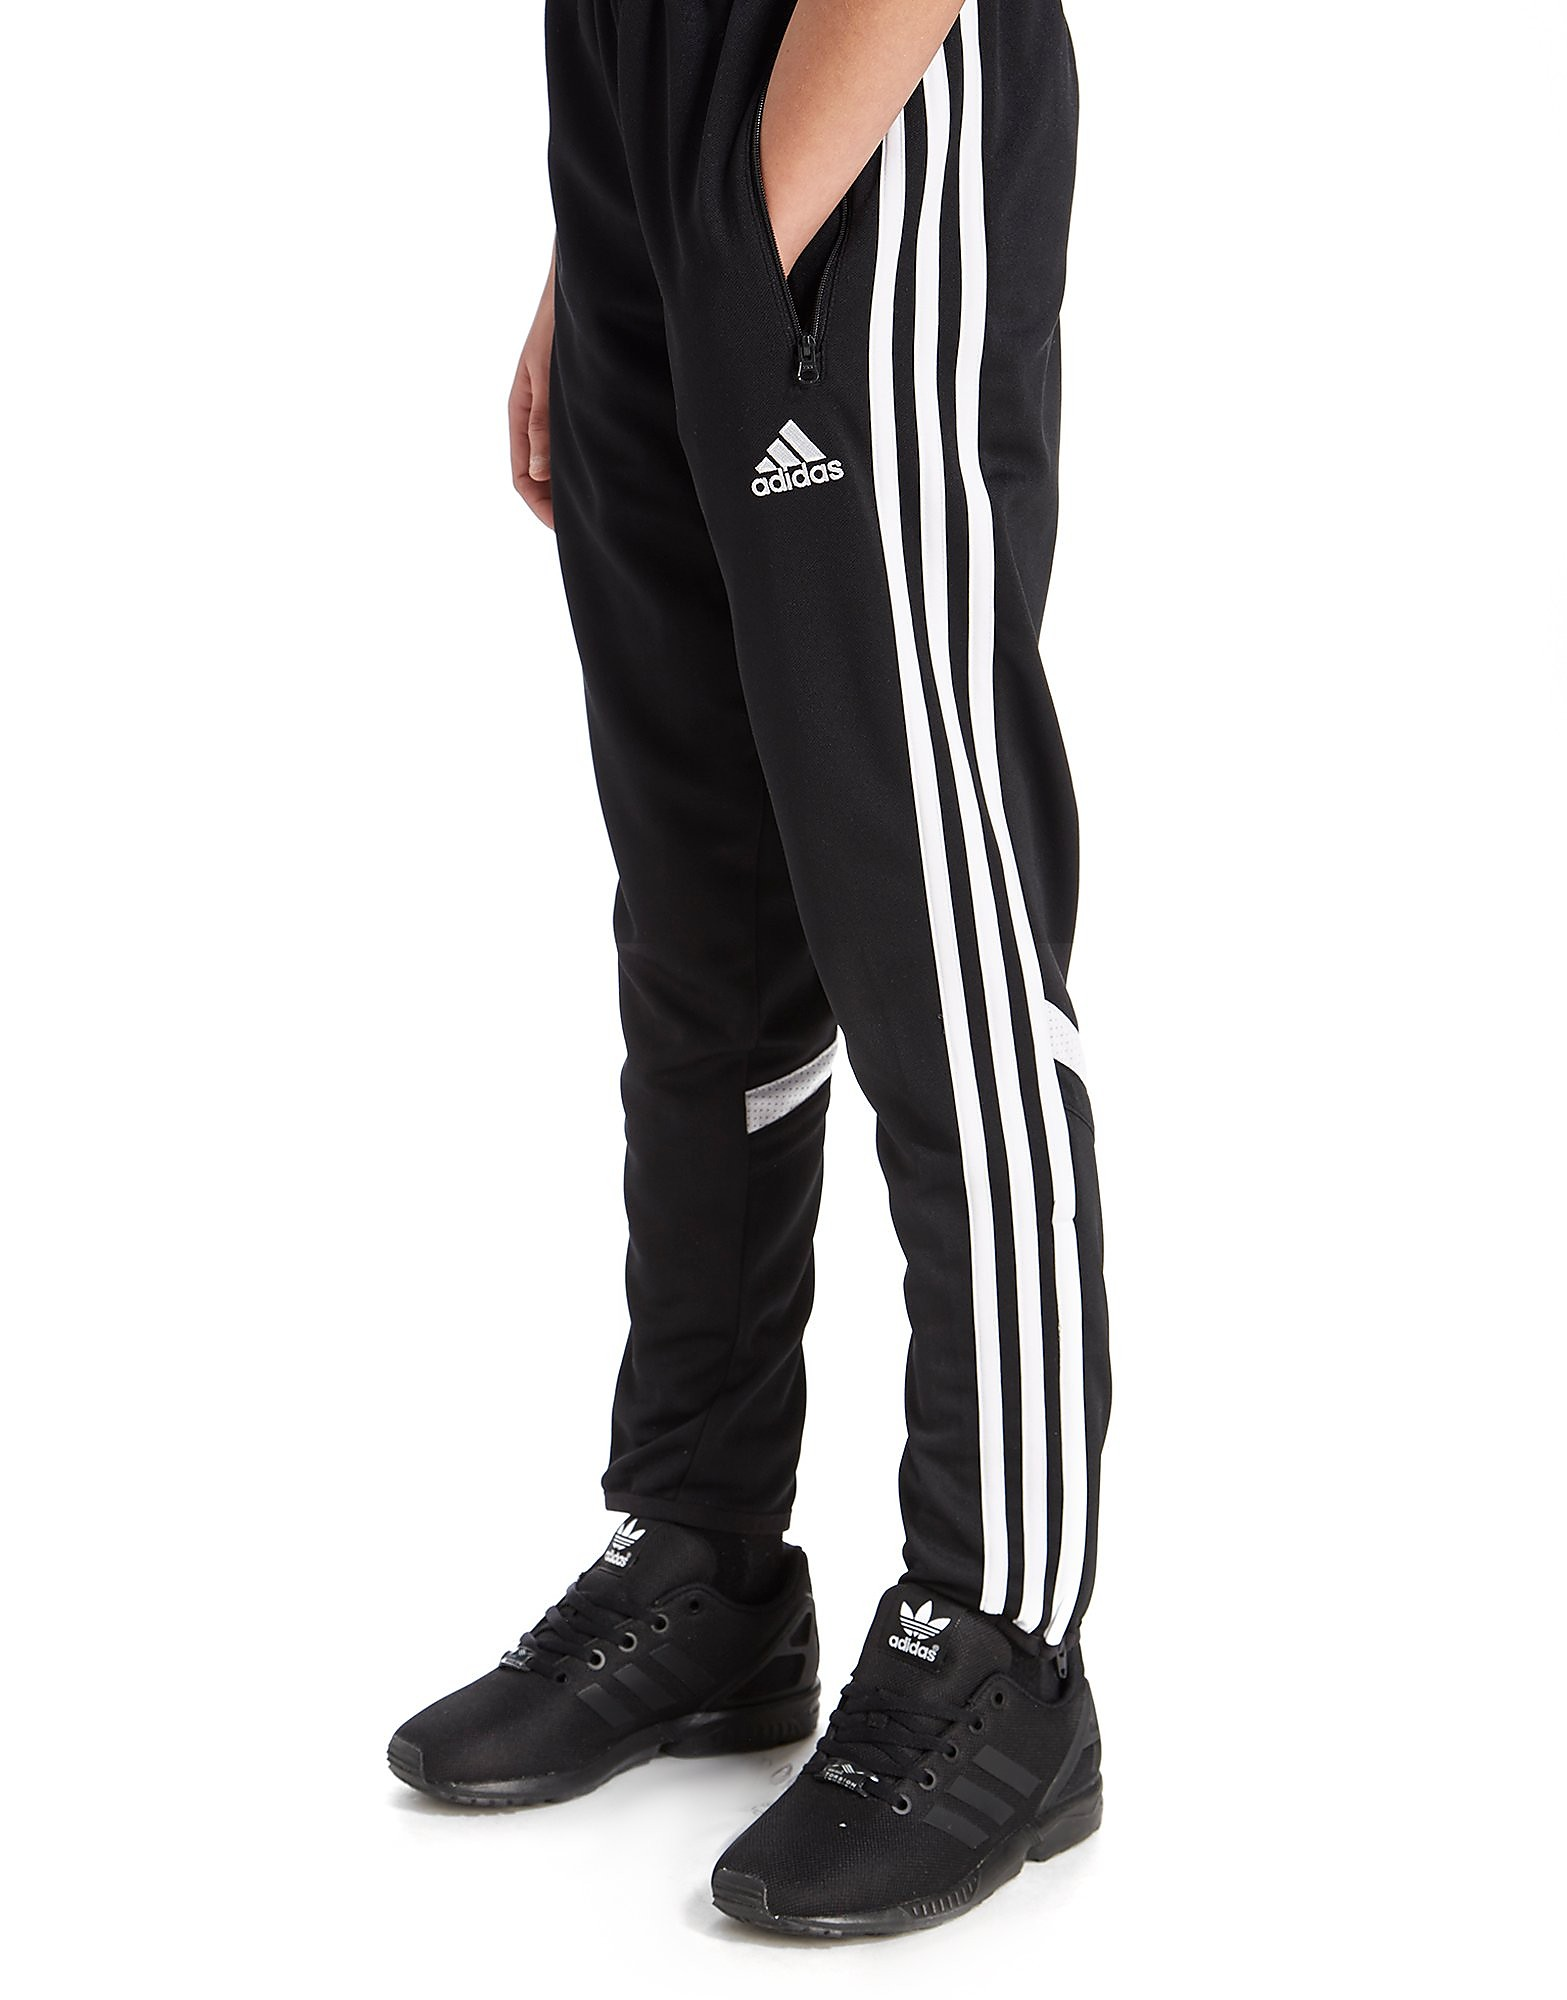 adidas Pantalon d'entraînement Condivo junior